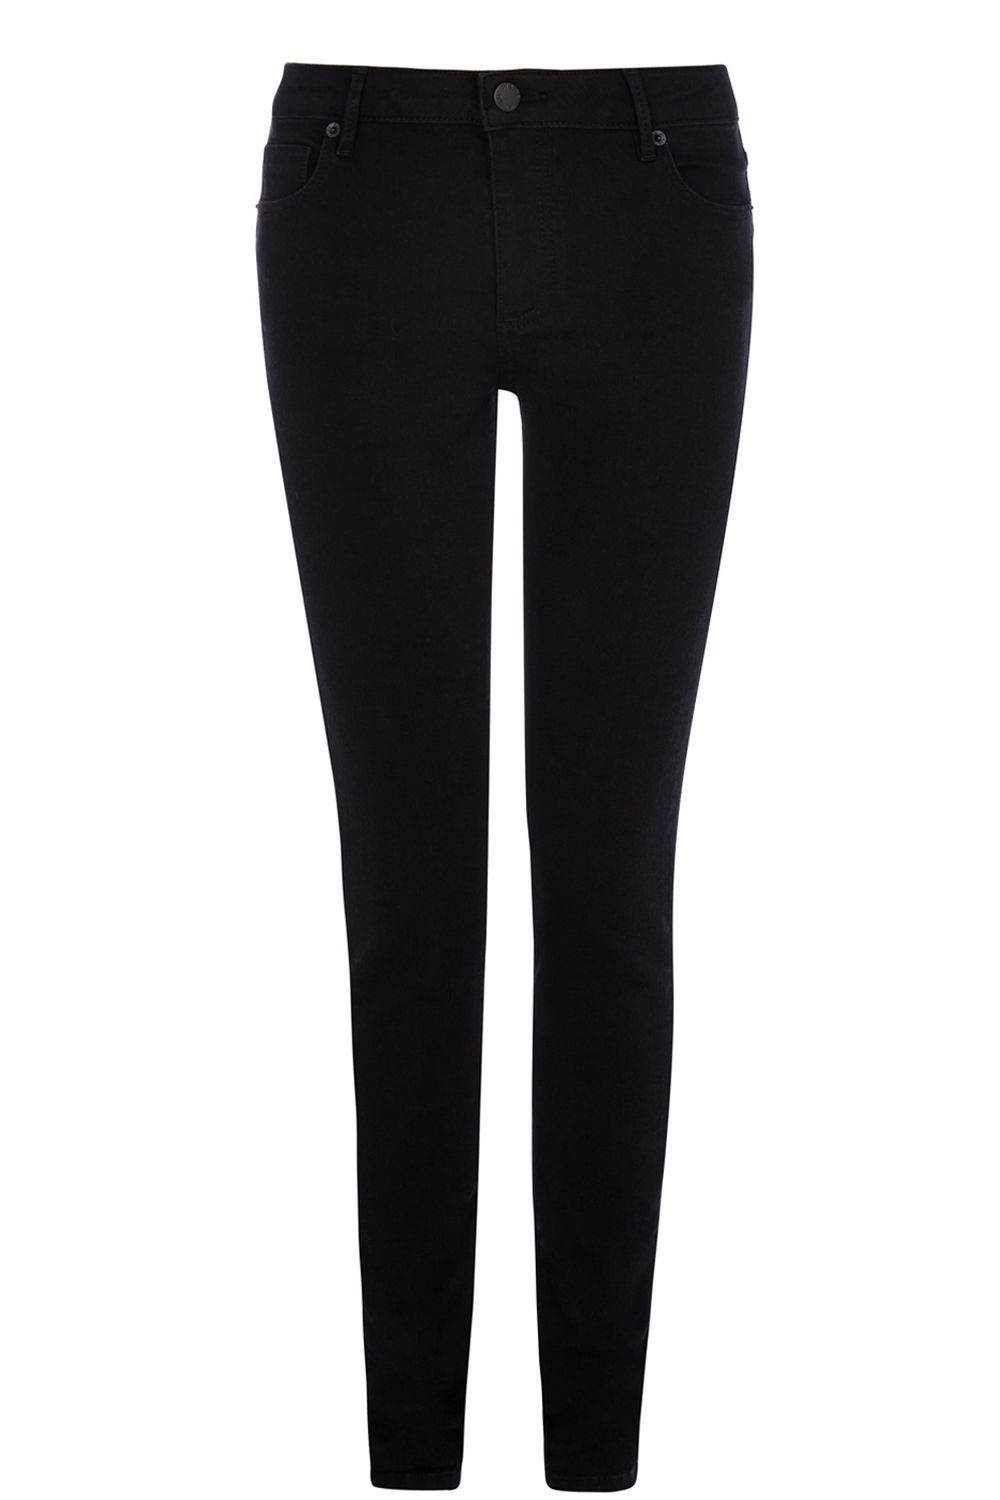 Powerhold Skinny Jean, Black - style: skinny leg; length: standard; pattern: plain; pocket detail: traditional 5 pocket; waist: mid/regular rise; predominant colour: black; occasions: casual; fibres: cotton - stretch; texture group: denim; pattern type: fabric; season: s/s 2016; wardrobe: basic